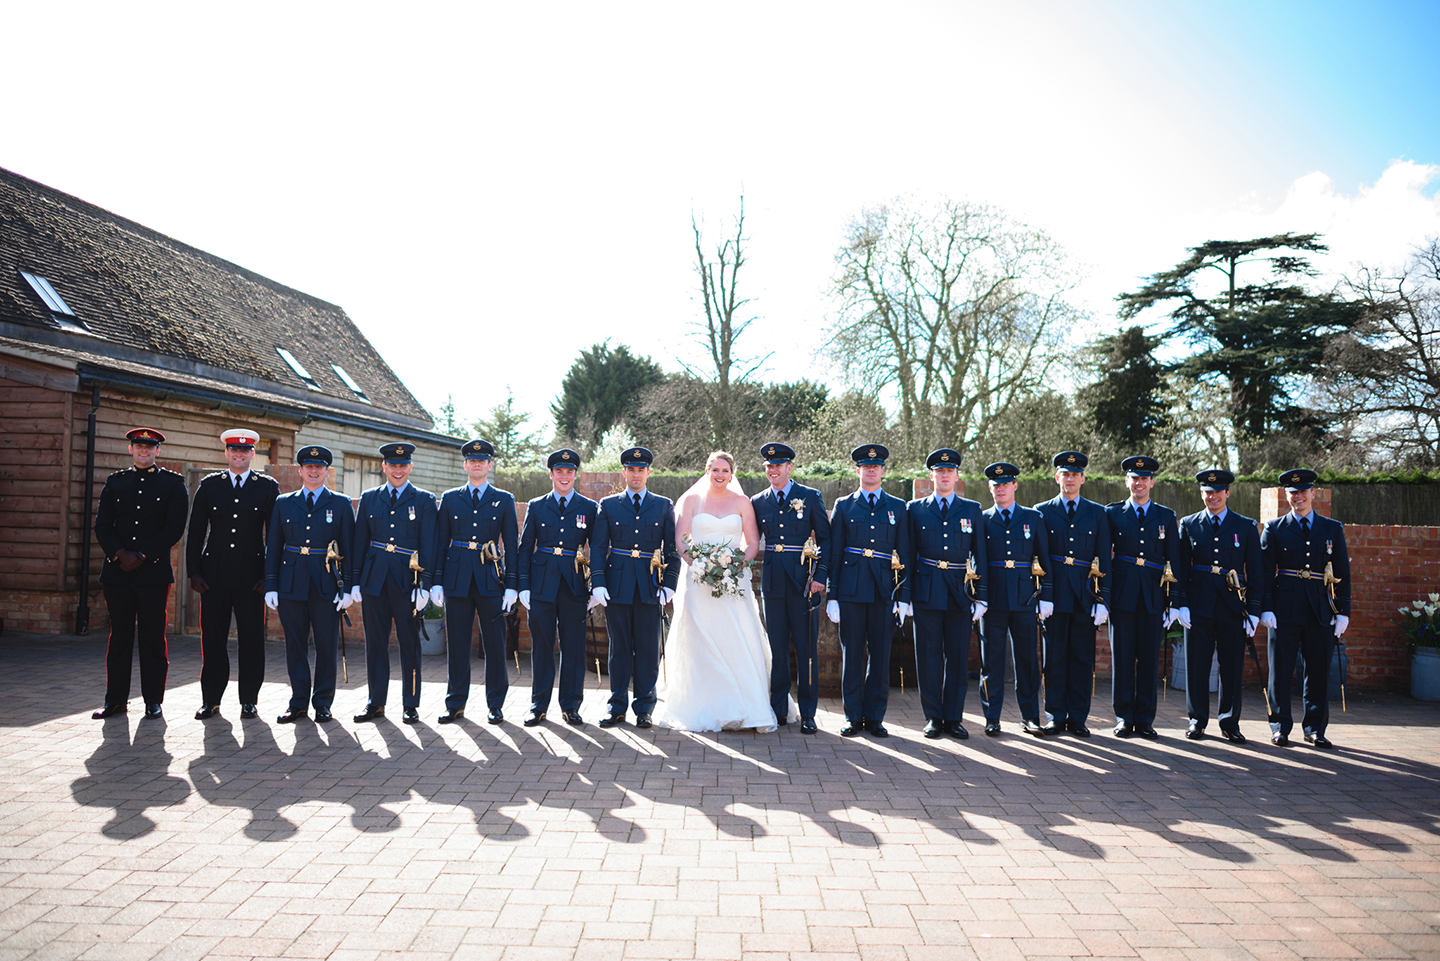 The bride stands with the groom and his groomsmen all wearing military suits to create a stunning wedding photo